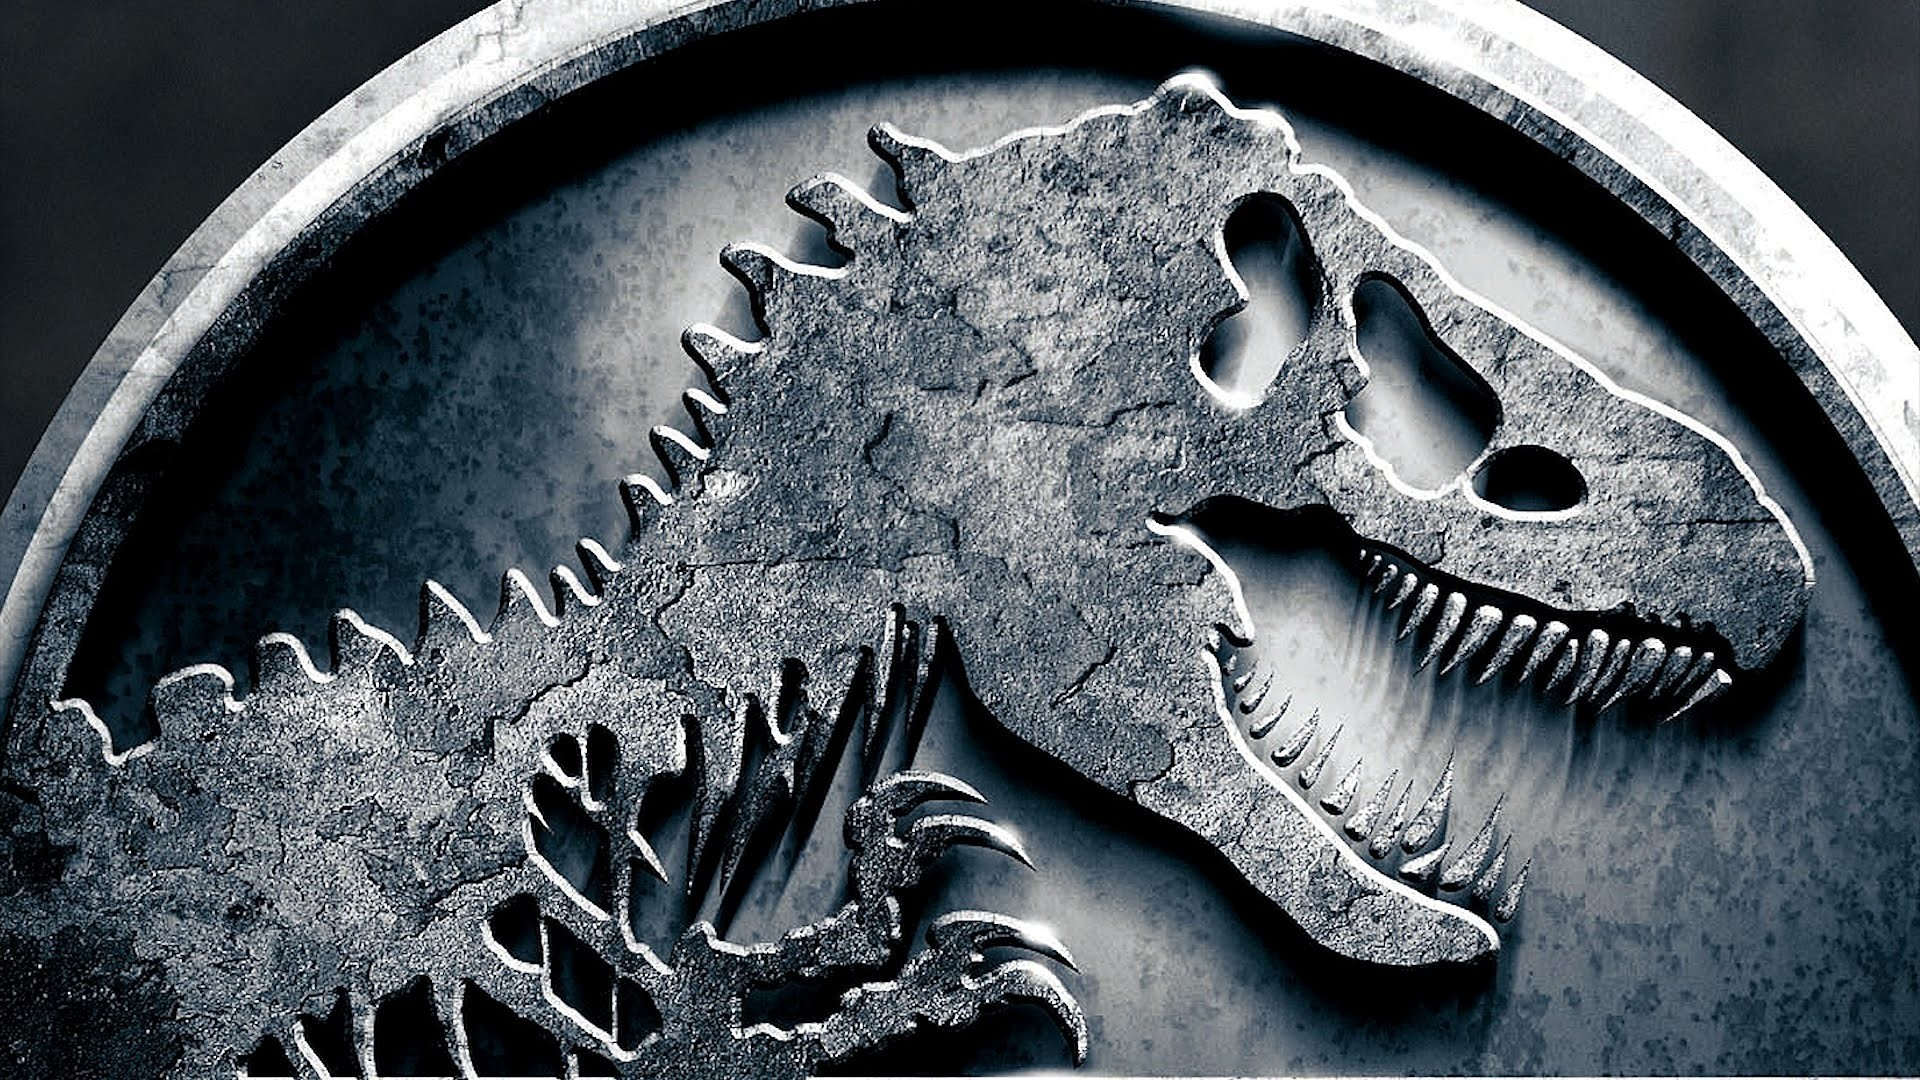 Jurassic World Free Wallpaper and Background